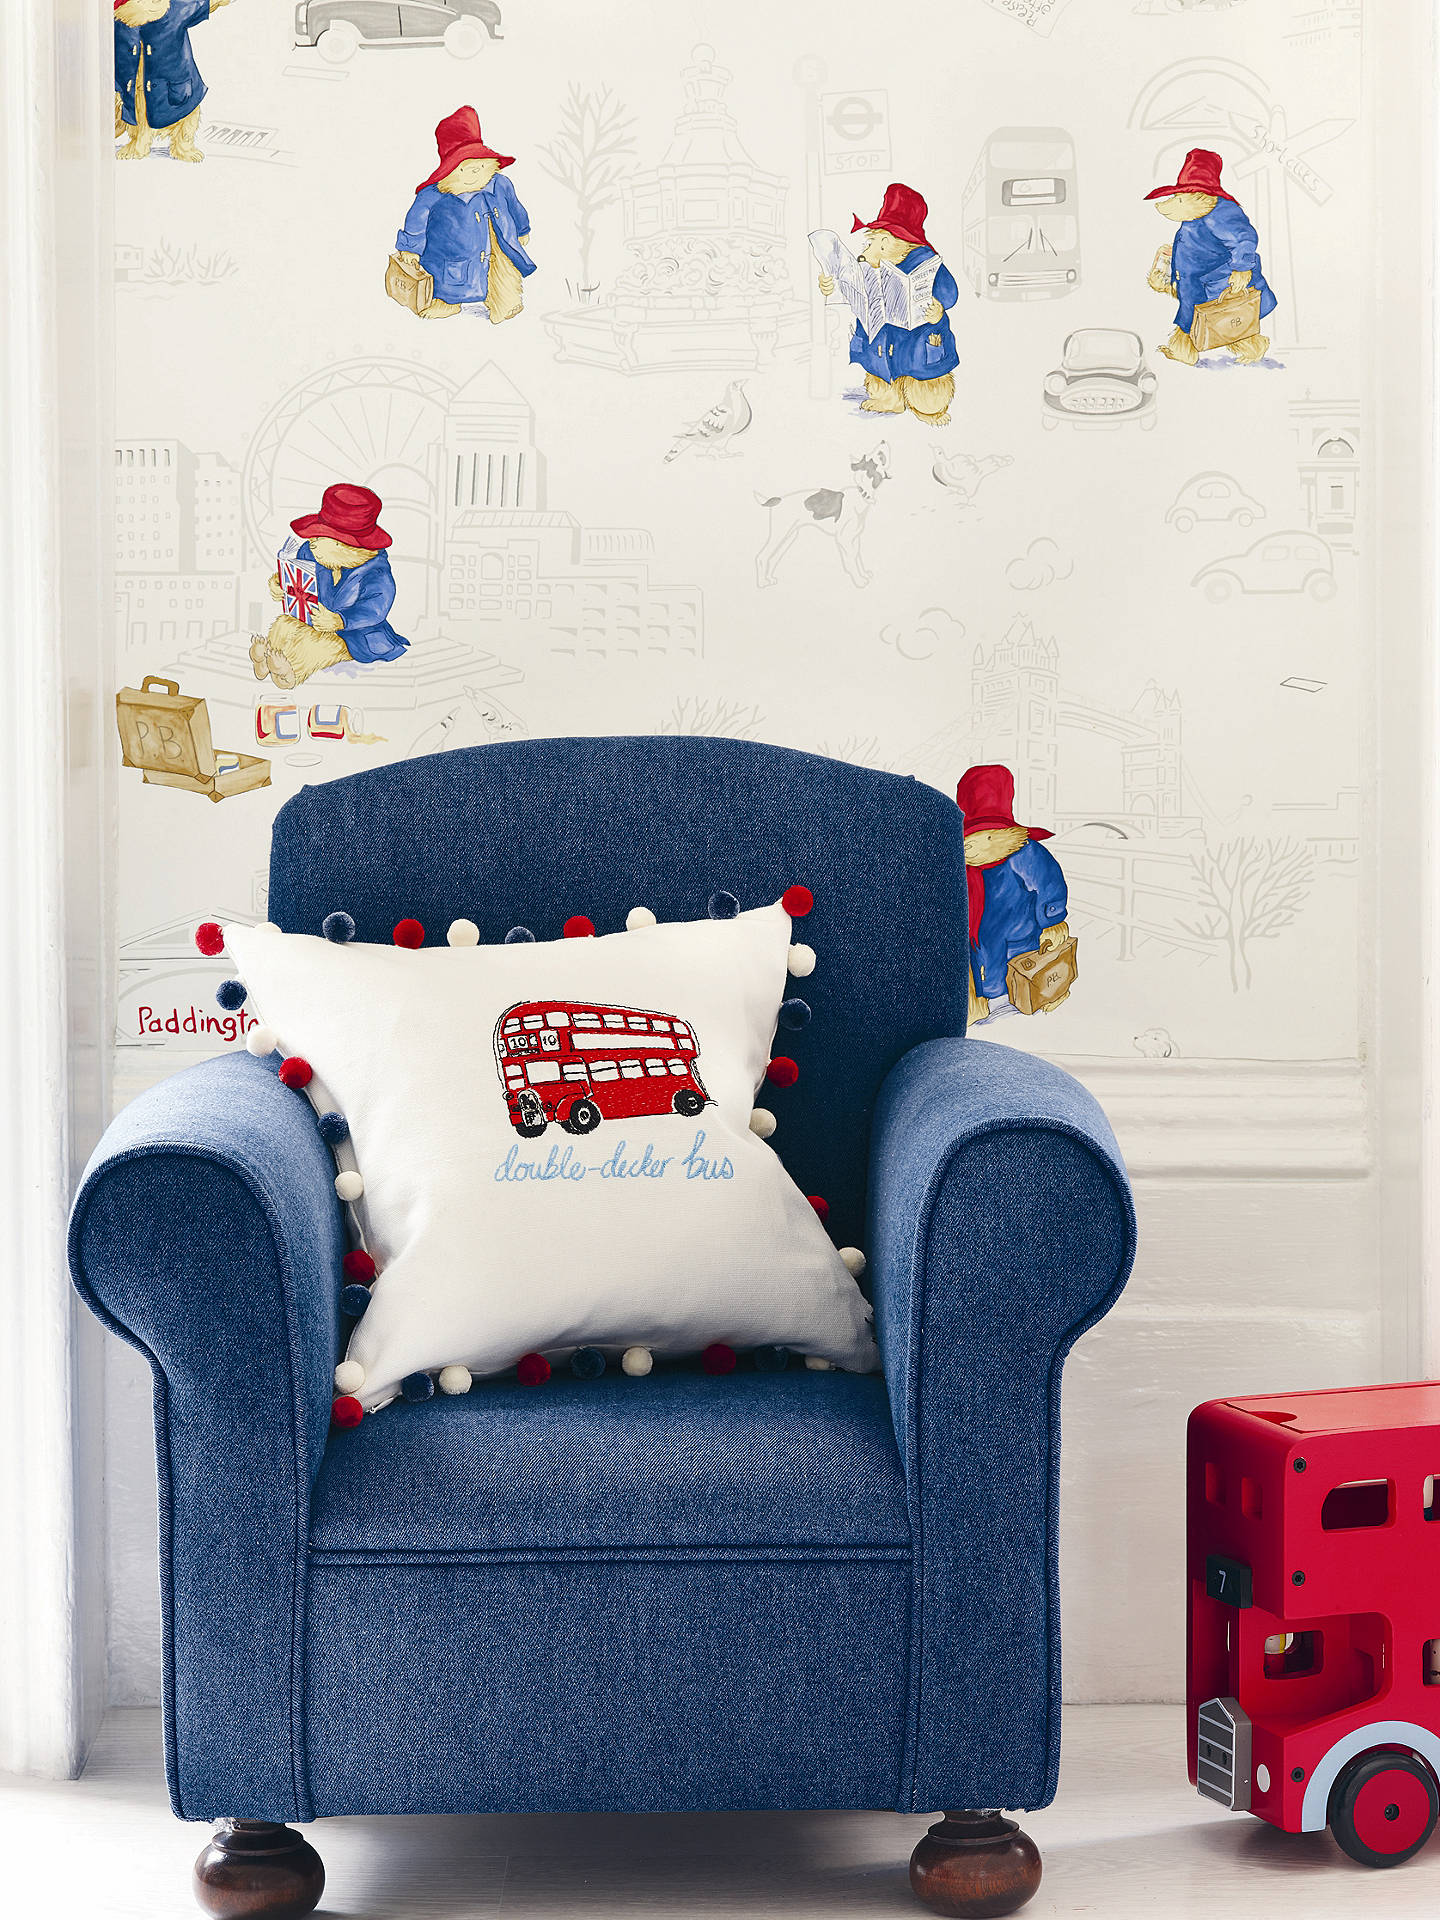 Buy Jane Churchill London Paddington Wallpaper, Red / Blue, J125W-01 Online at johnlewis.com